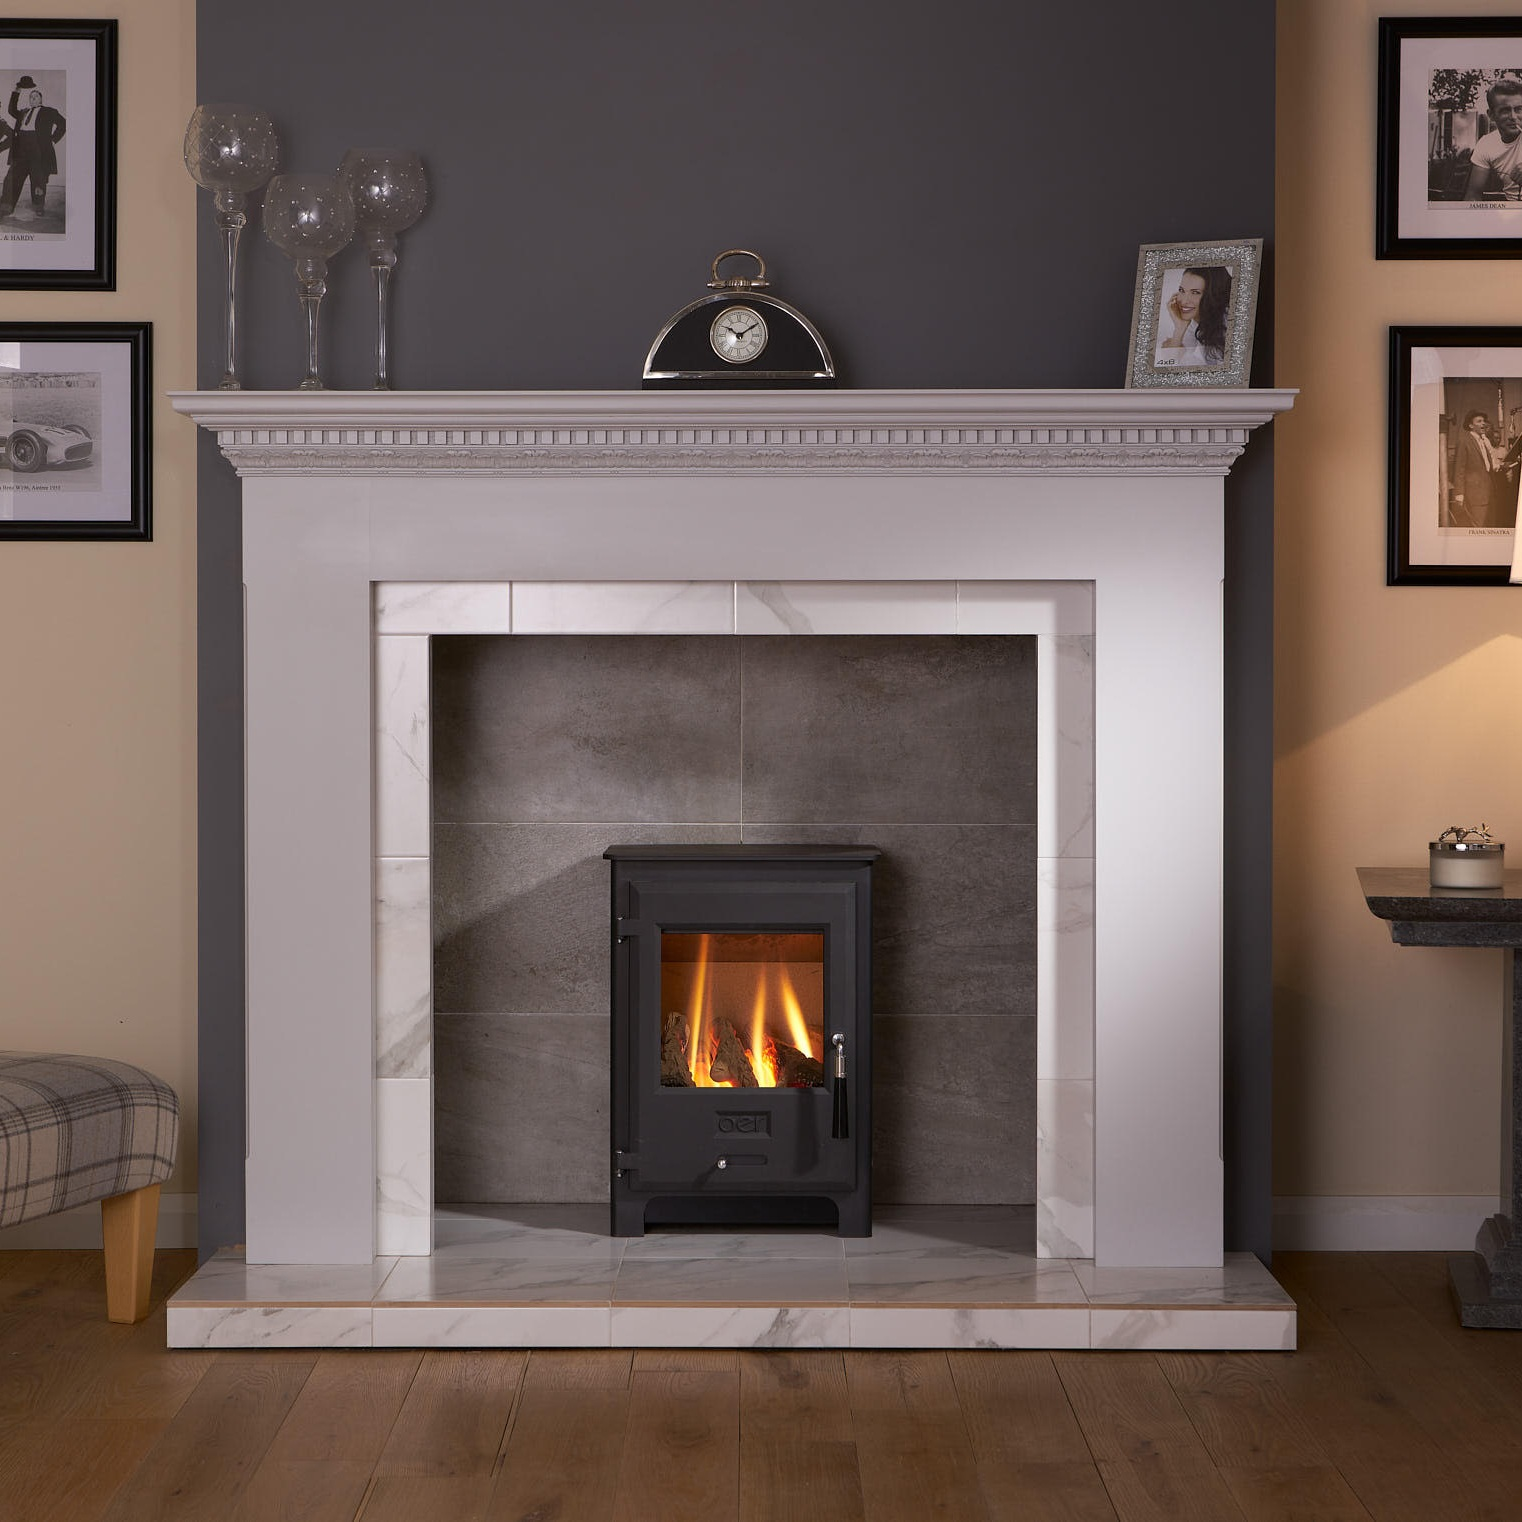 Surrounds - Get a beautiful surround to suit your stove and fireplace.